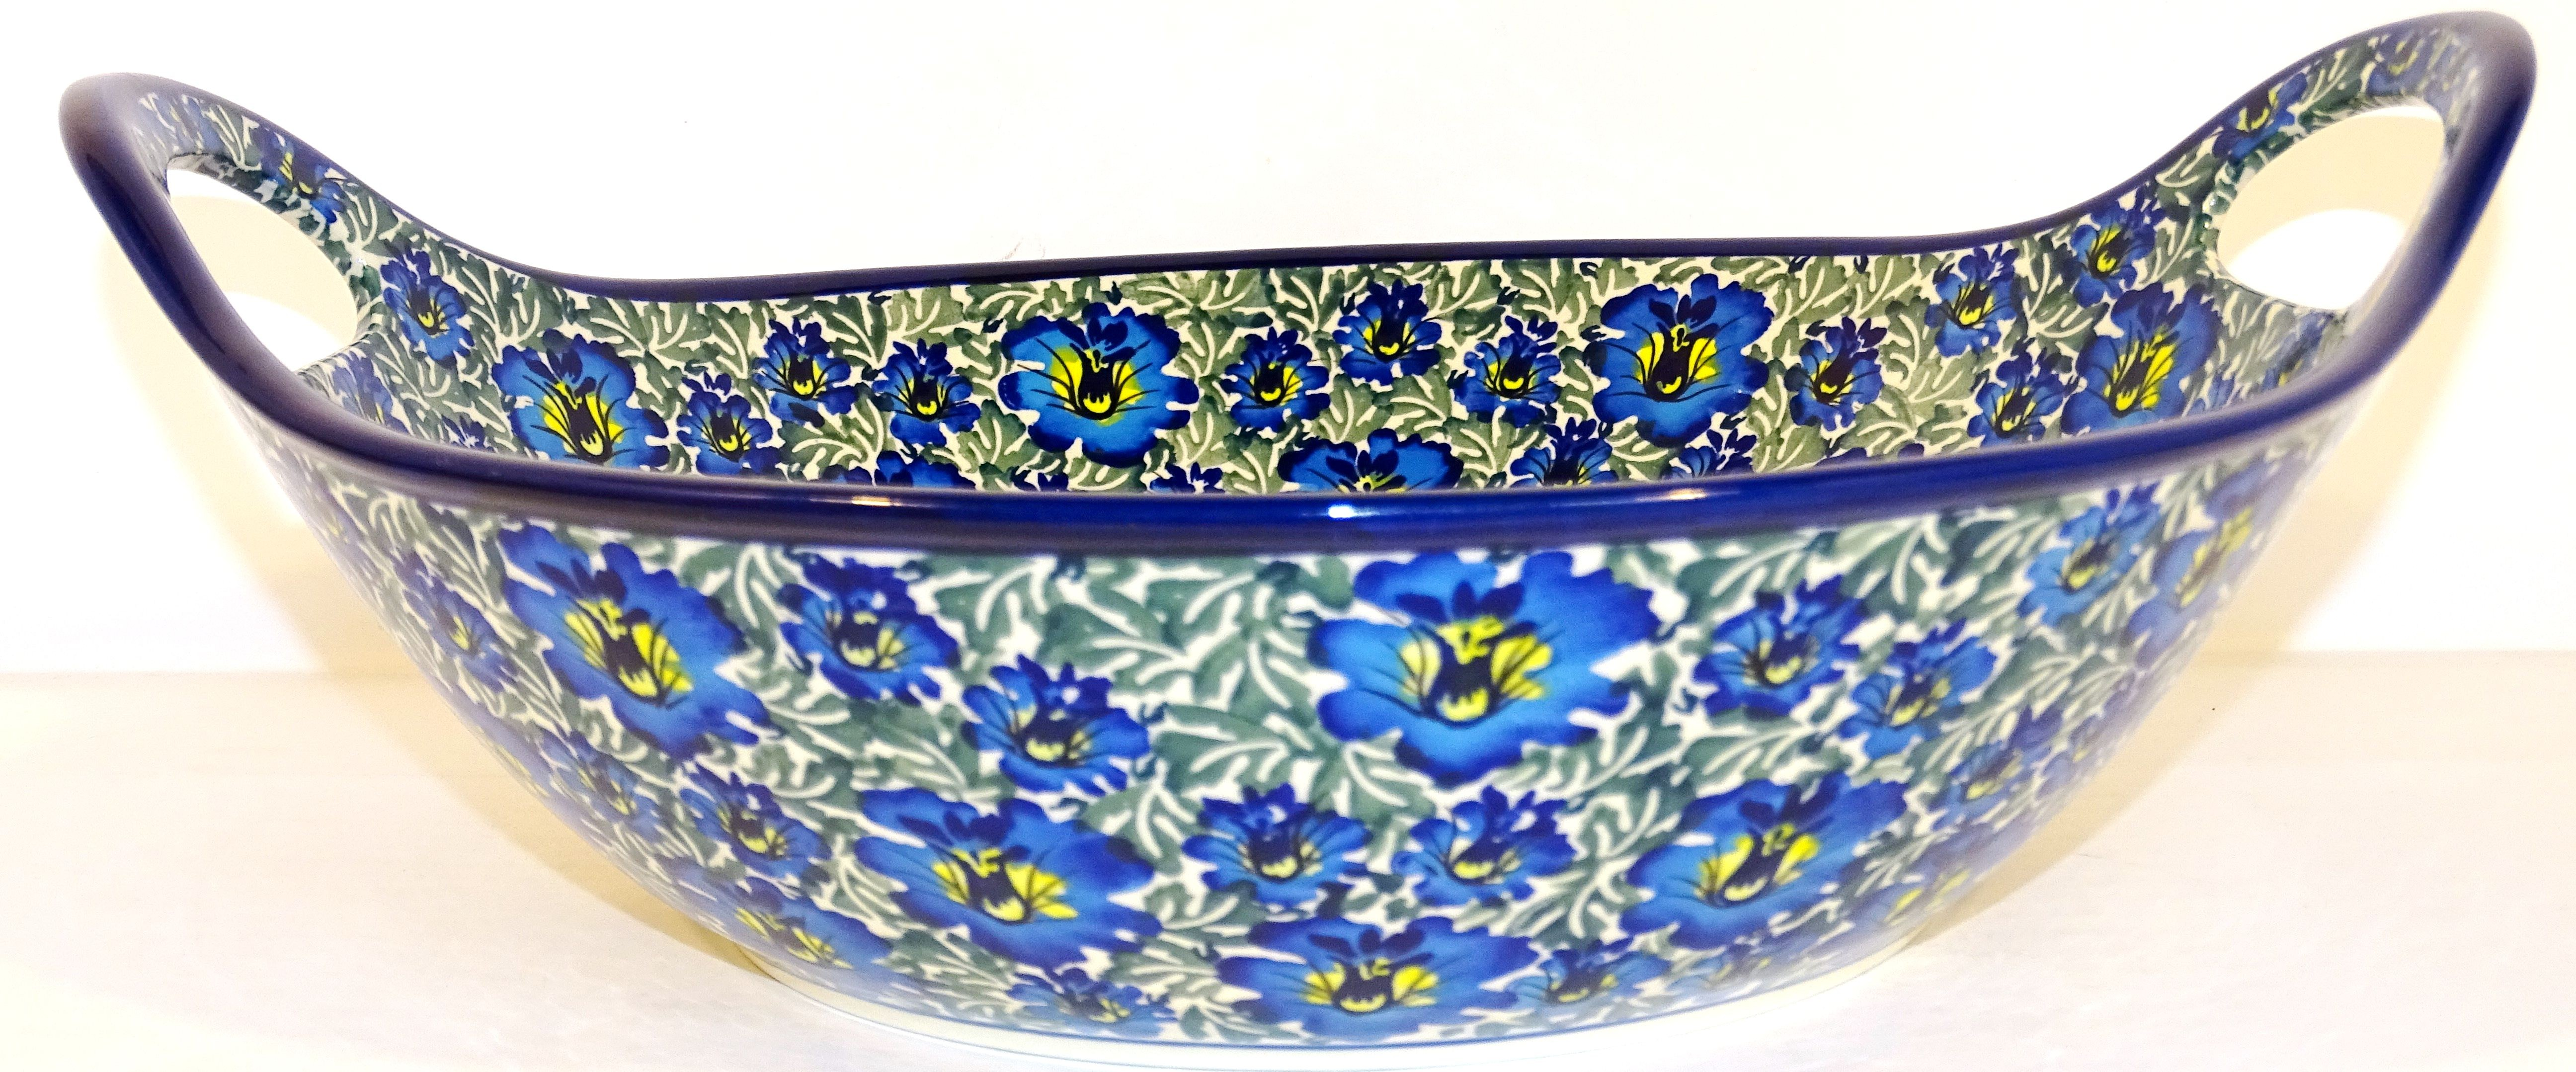 Pottery Avenue Baker Bowl With Handle | BLUE LAGOON